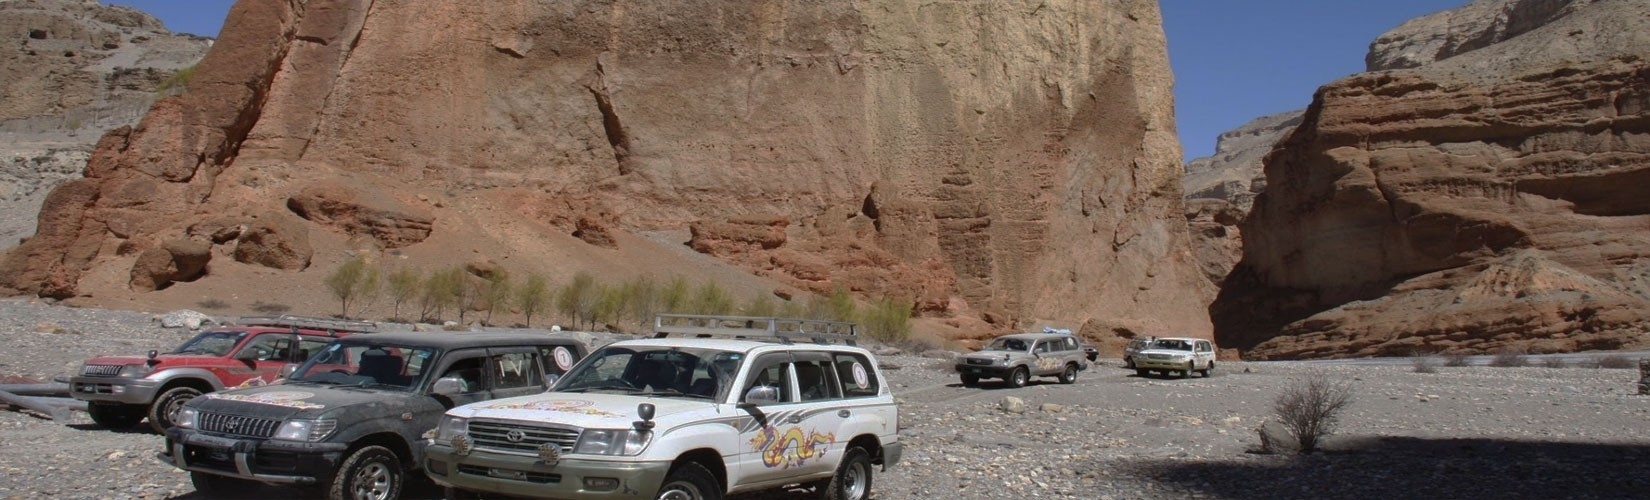 4 wheel jeep drive to Upper Mustang